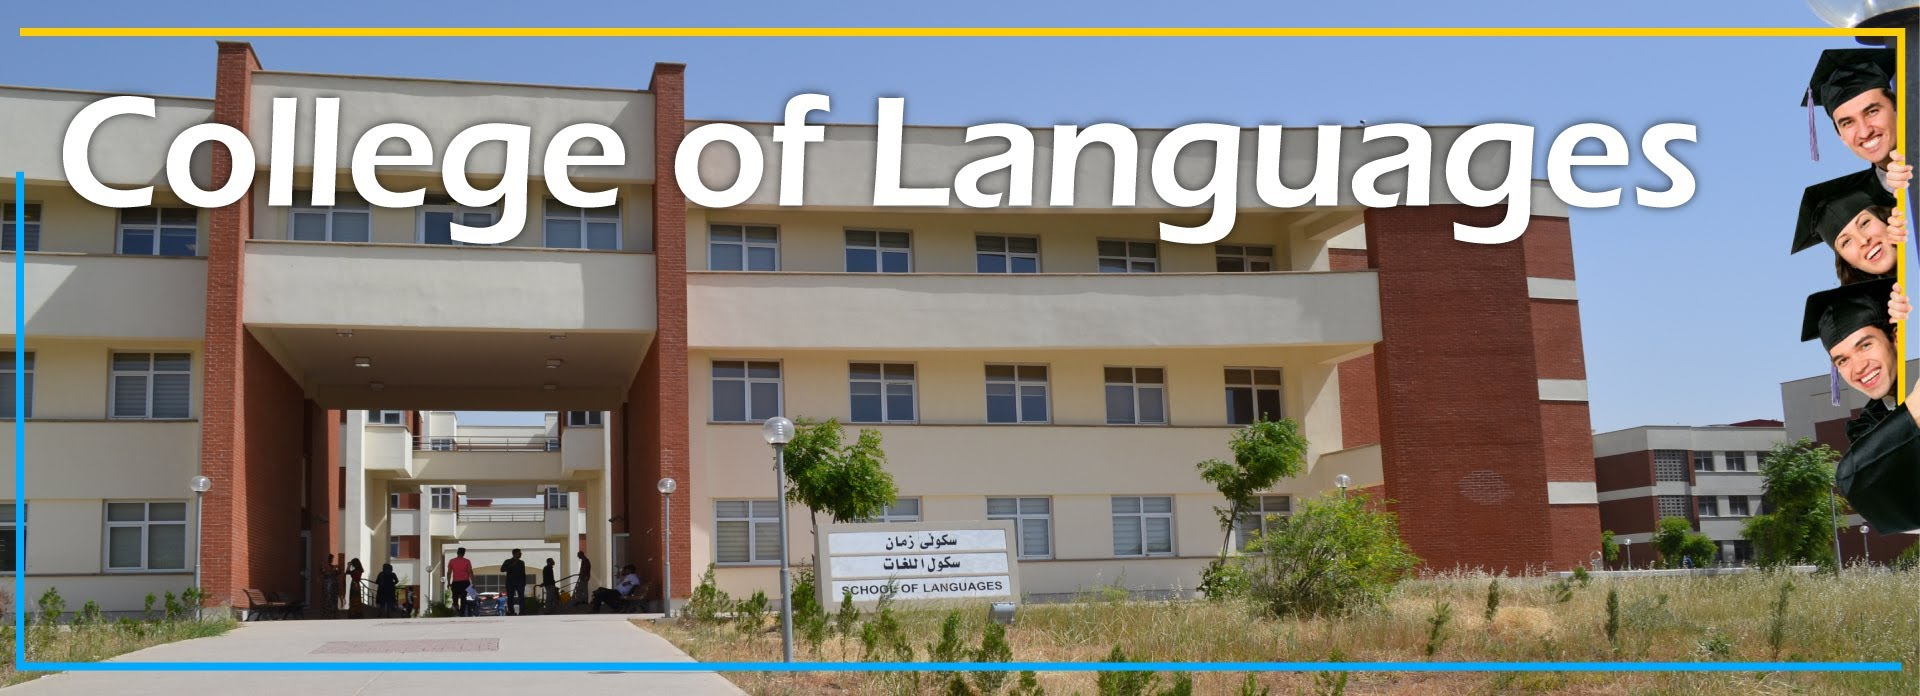 College of Languages